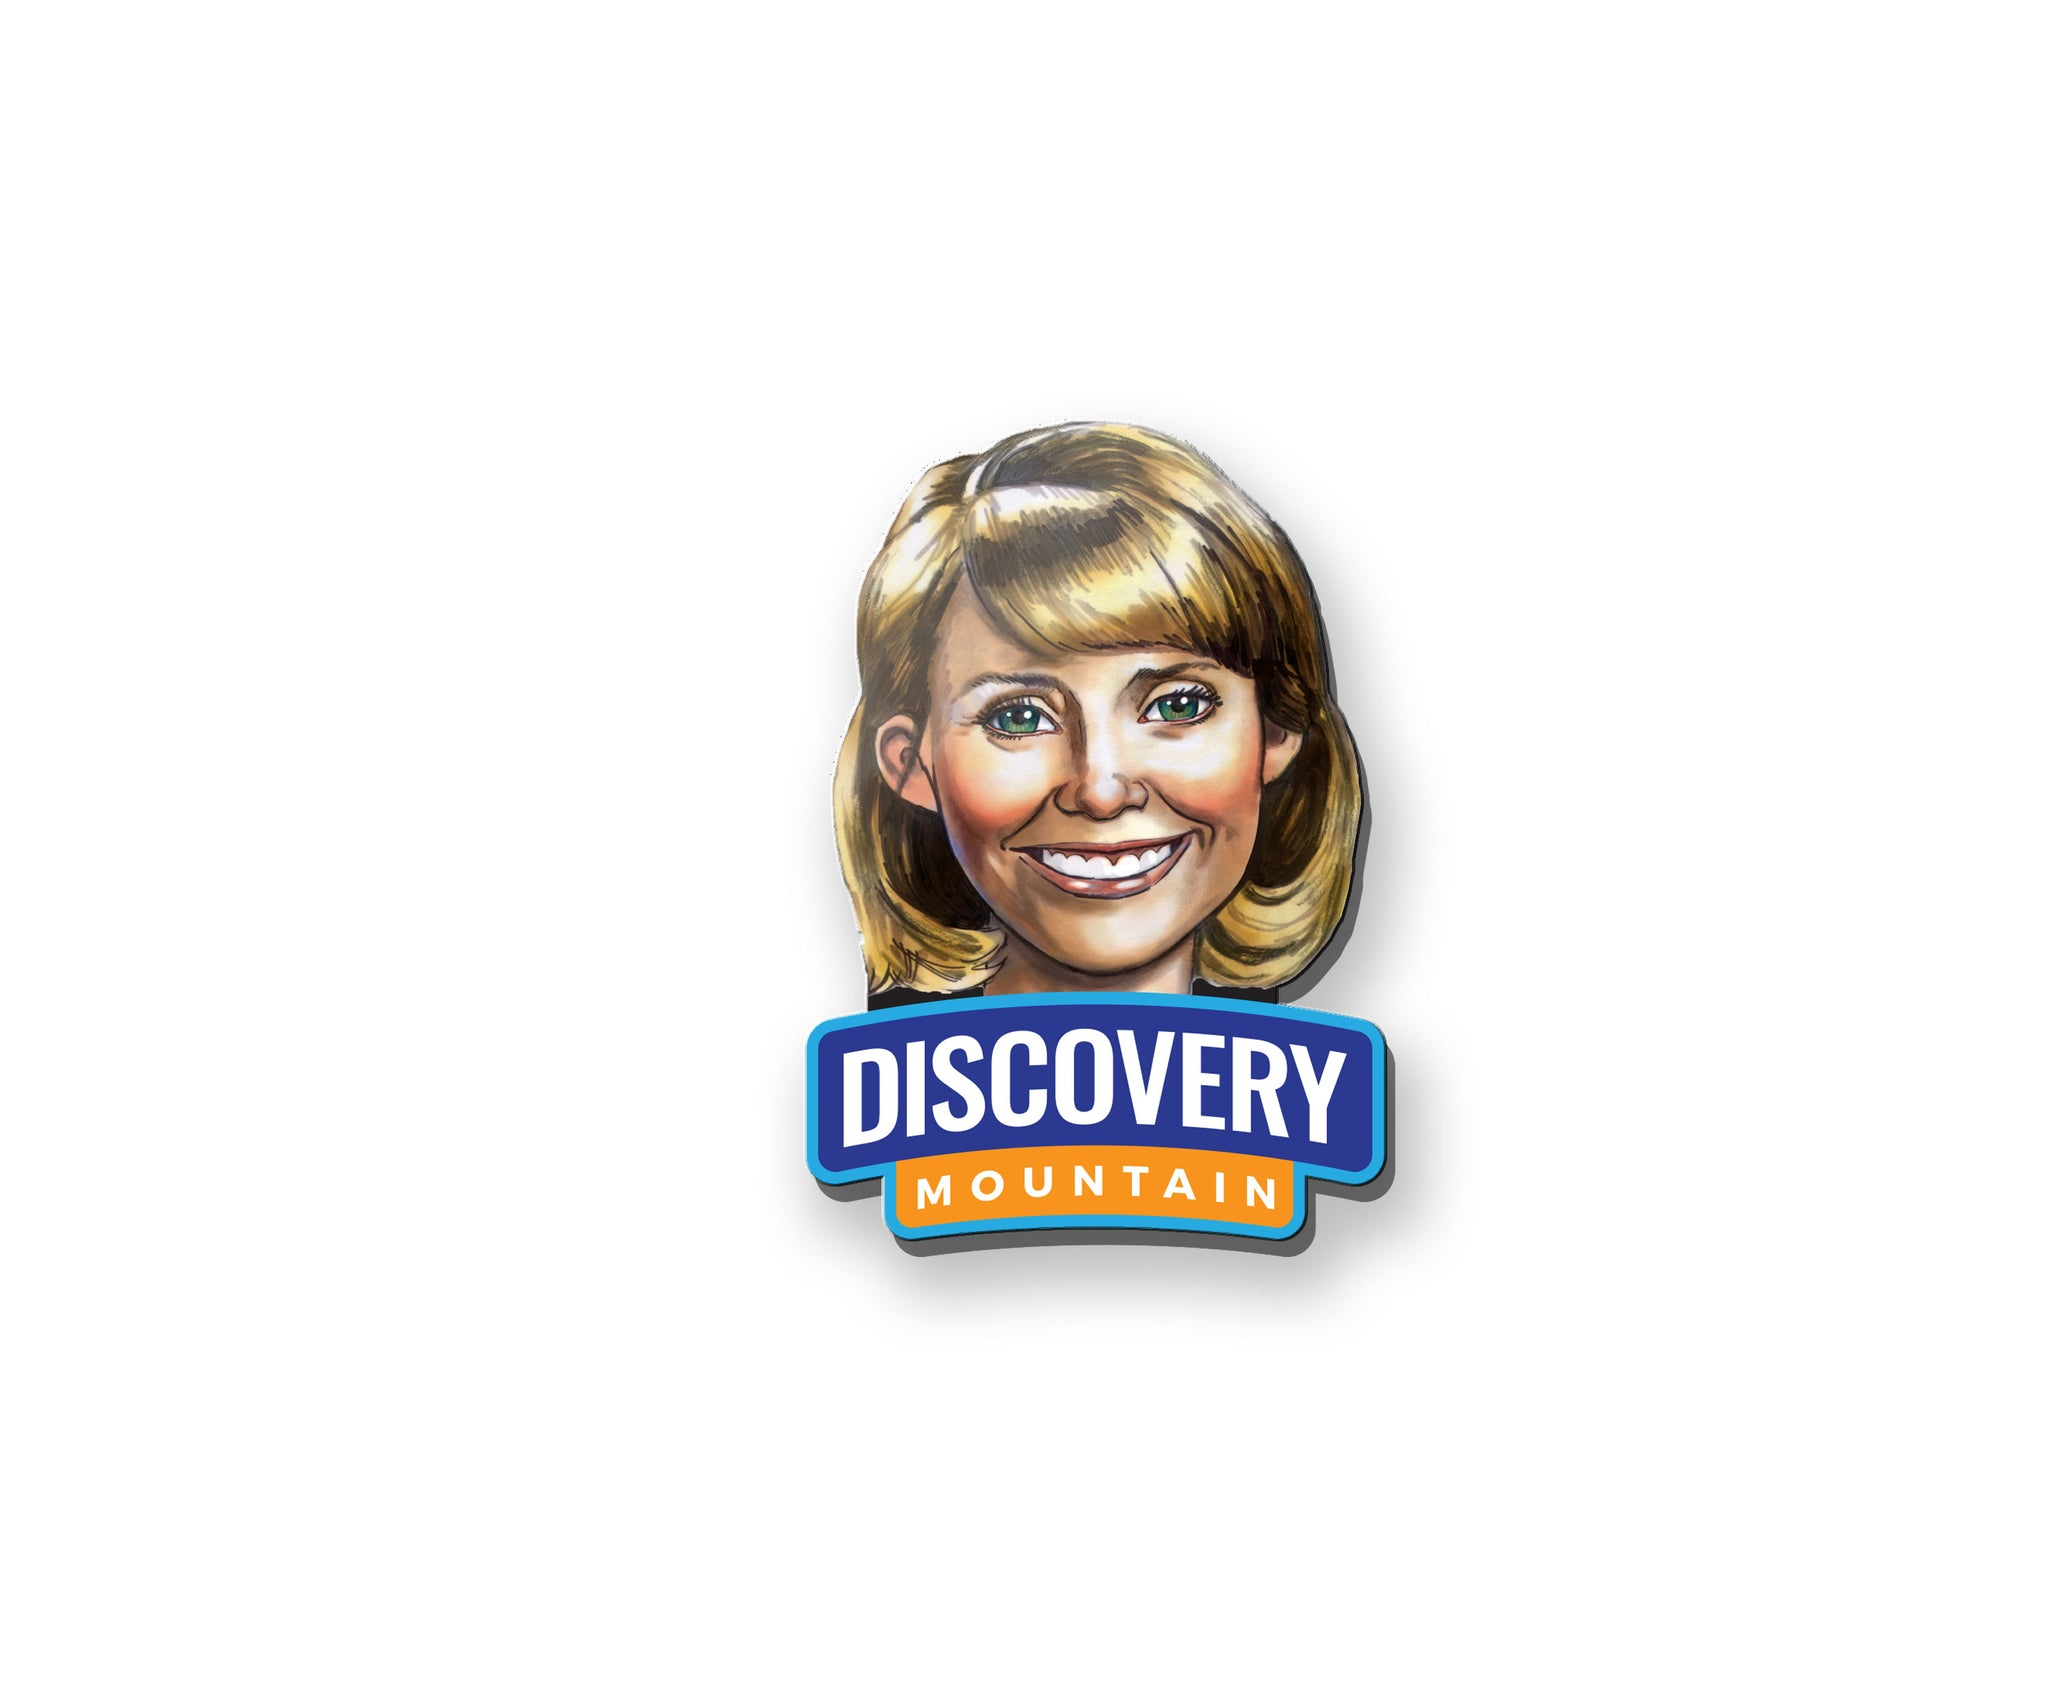 Discovery Mountain Character Pin - Ms. Jean